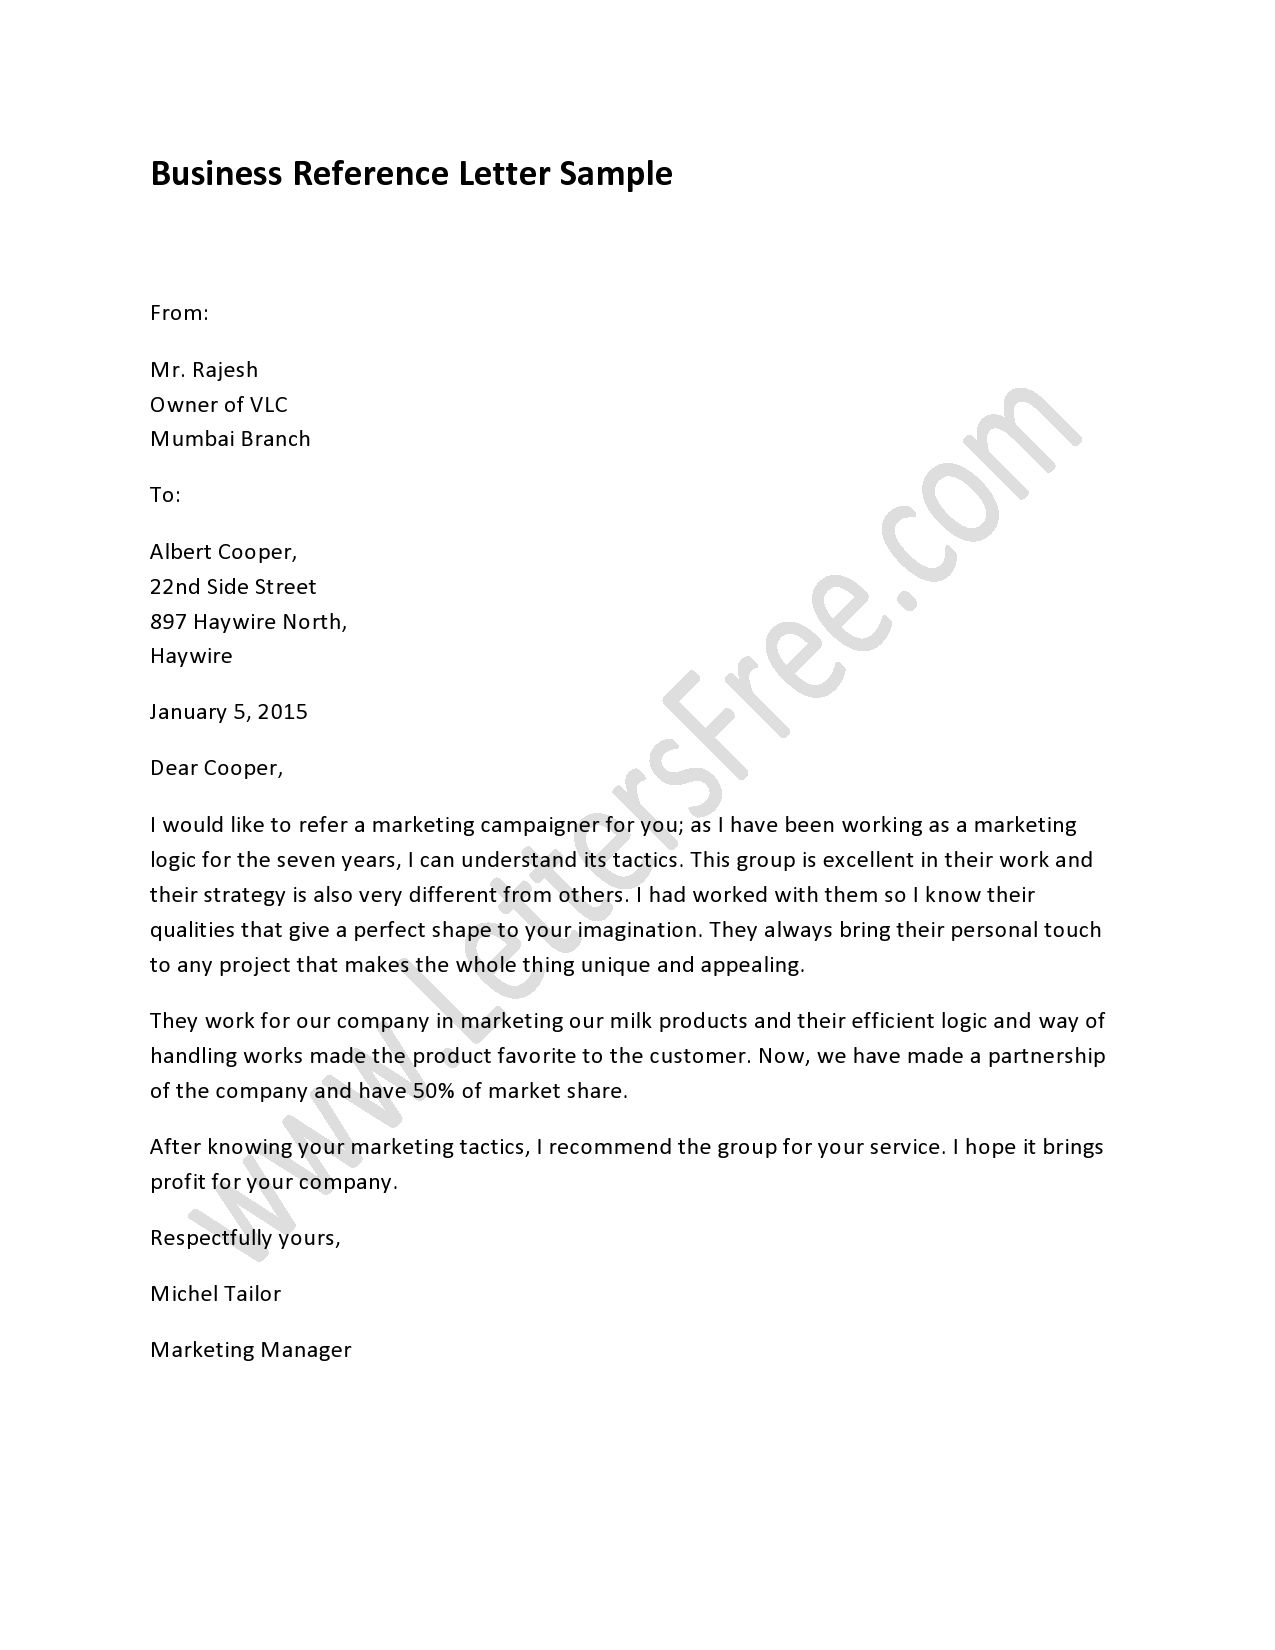 sample business reference letter how to write a professional sample business reference letter how to write a professional reference letter for the business purpose